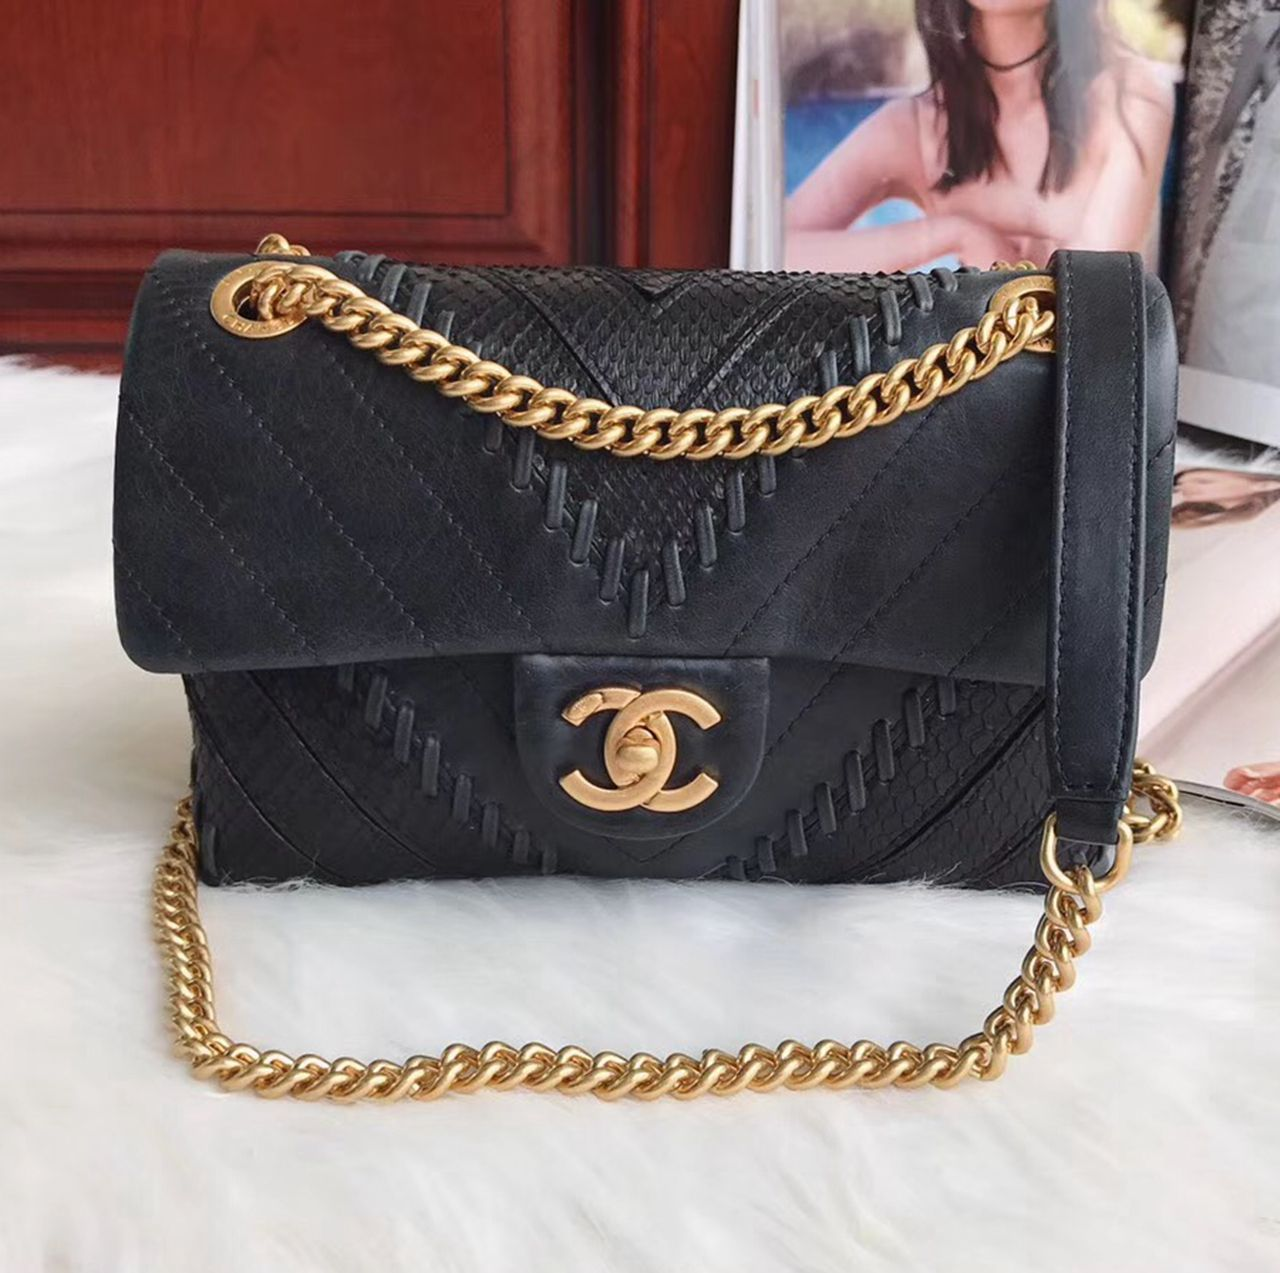 6e6ce26507bbda Chanel Chevron Small Flap Bag 100% Authentic 80% Off | Chanel Bags Sale  Outlet